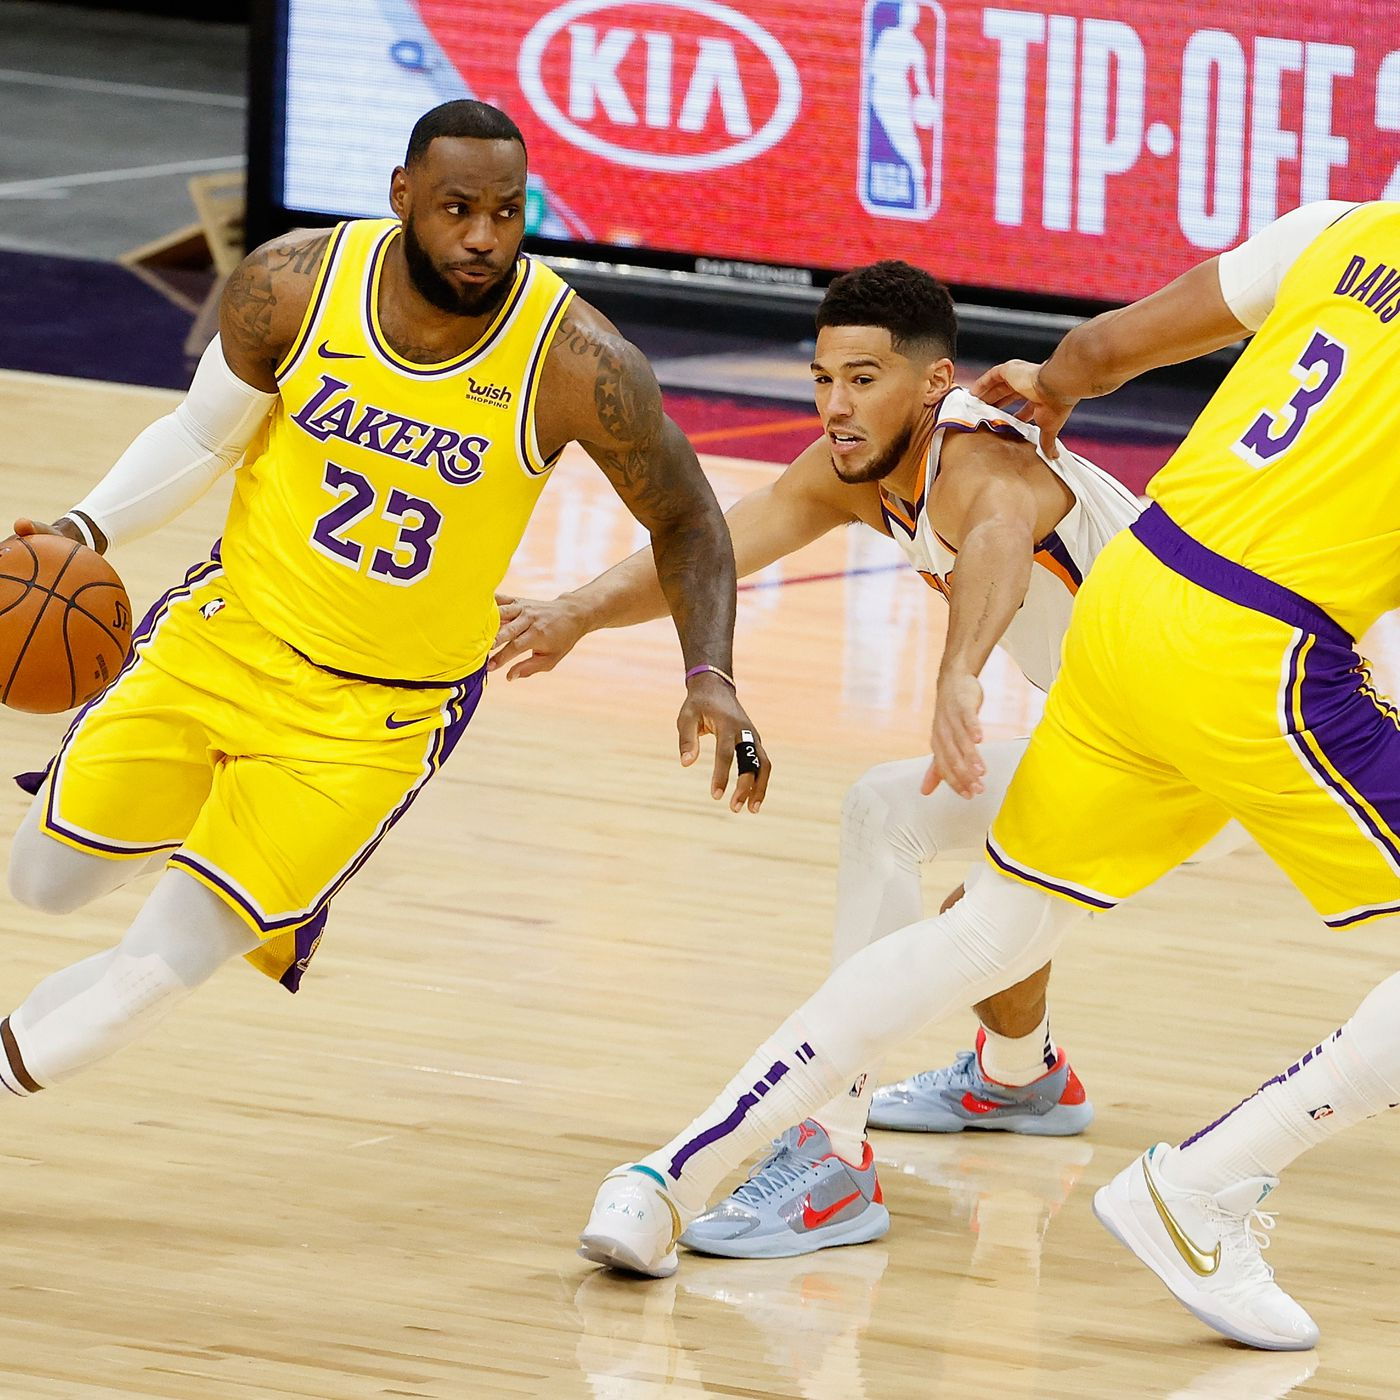 Nba Playoff Bracket 2021 Full Results Scores Schedule Betting Odds Fantasy Basketball Picks For Nba Playoffs Draftkings Nation